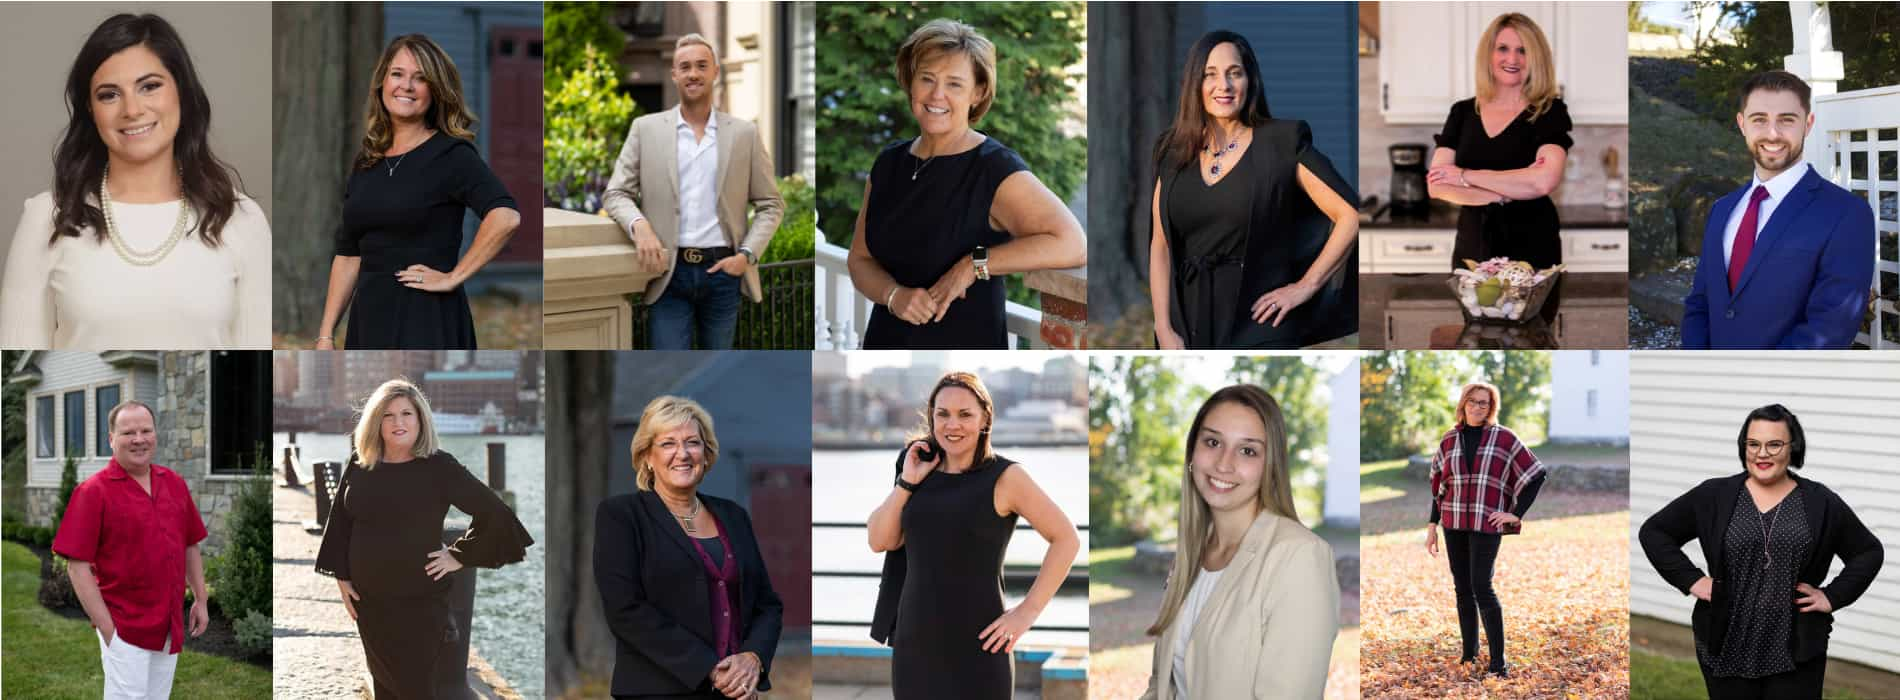 Farrelly Realty Group Agents